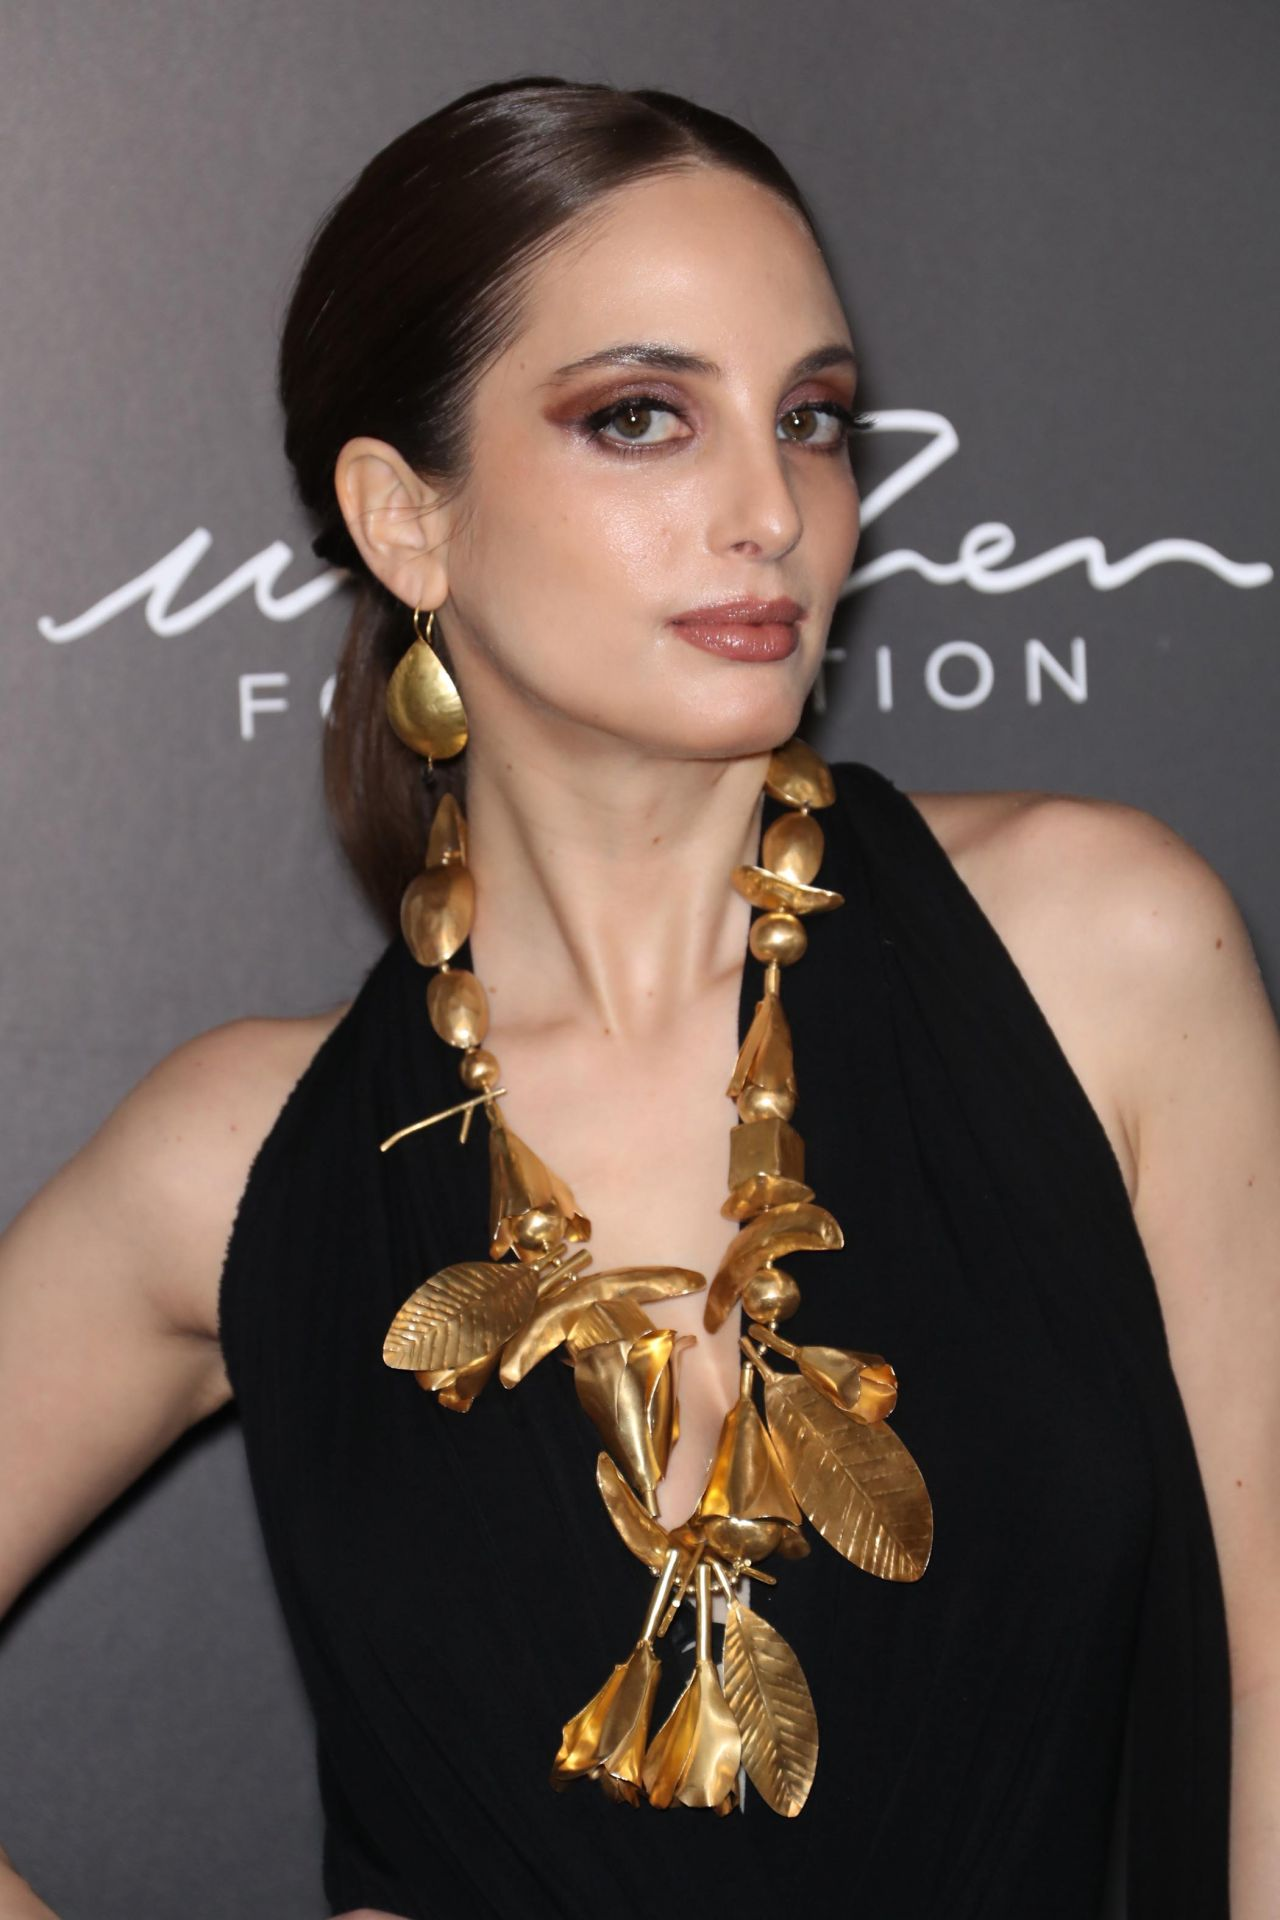 Alexa ray joel portrait in new york to promote her show - 2019 year